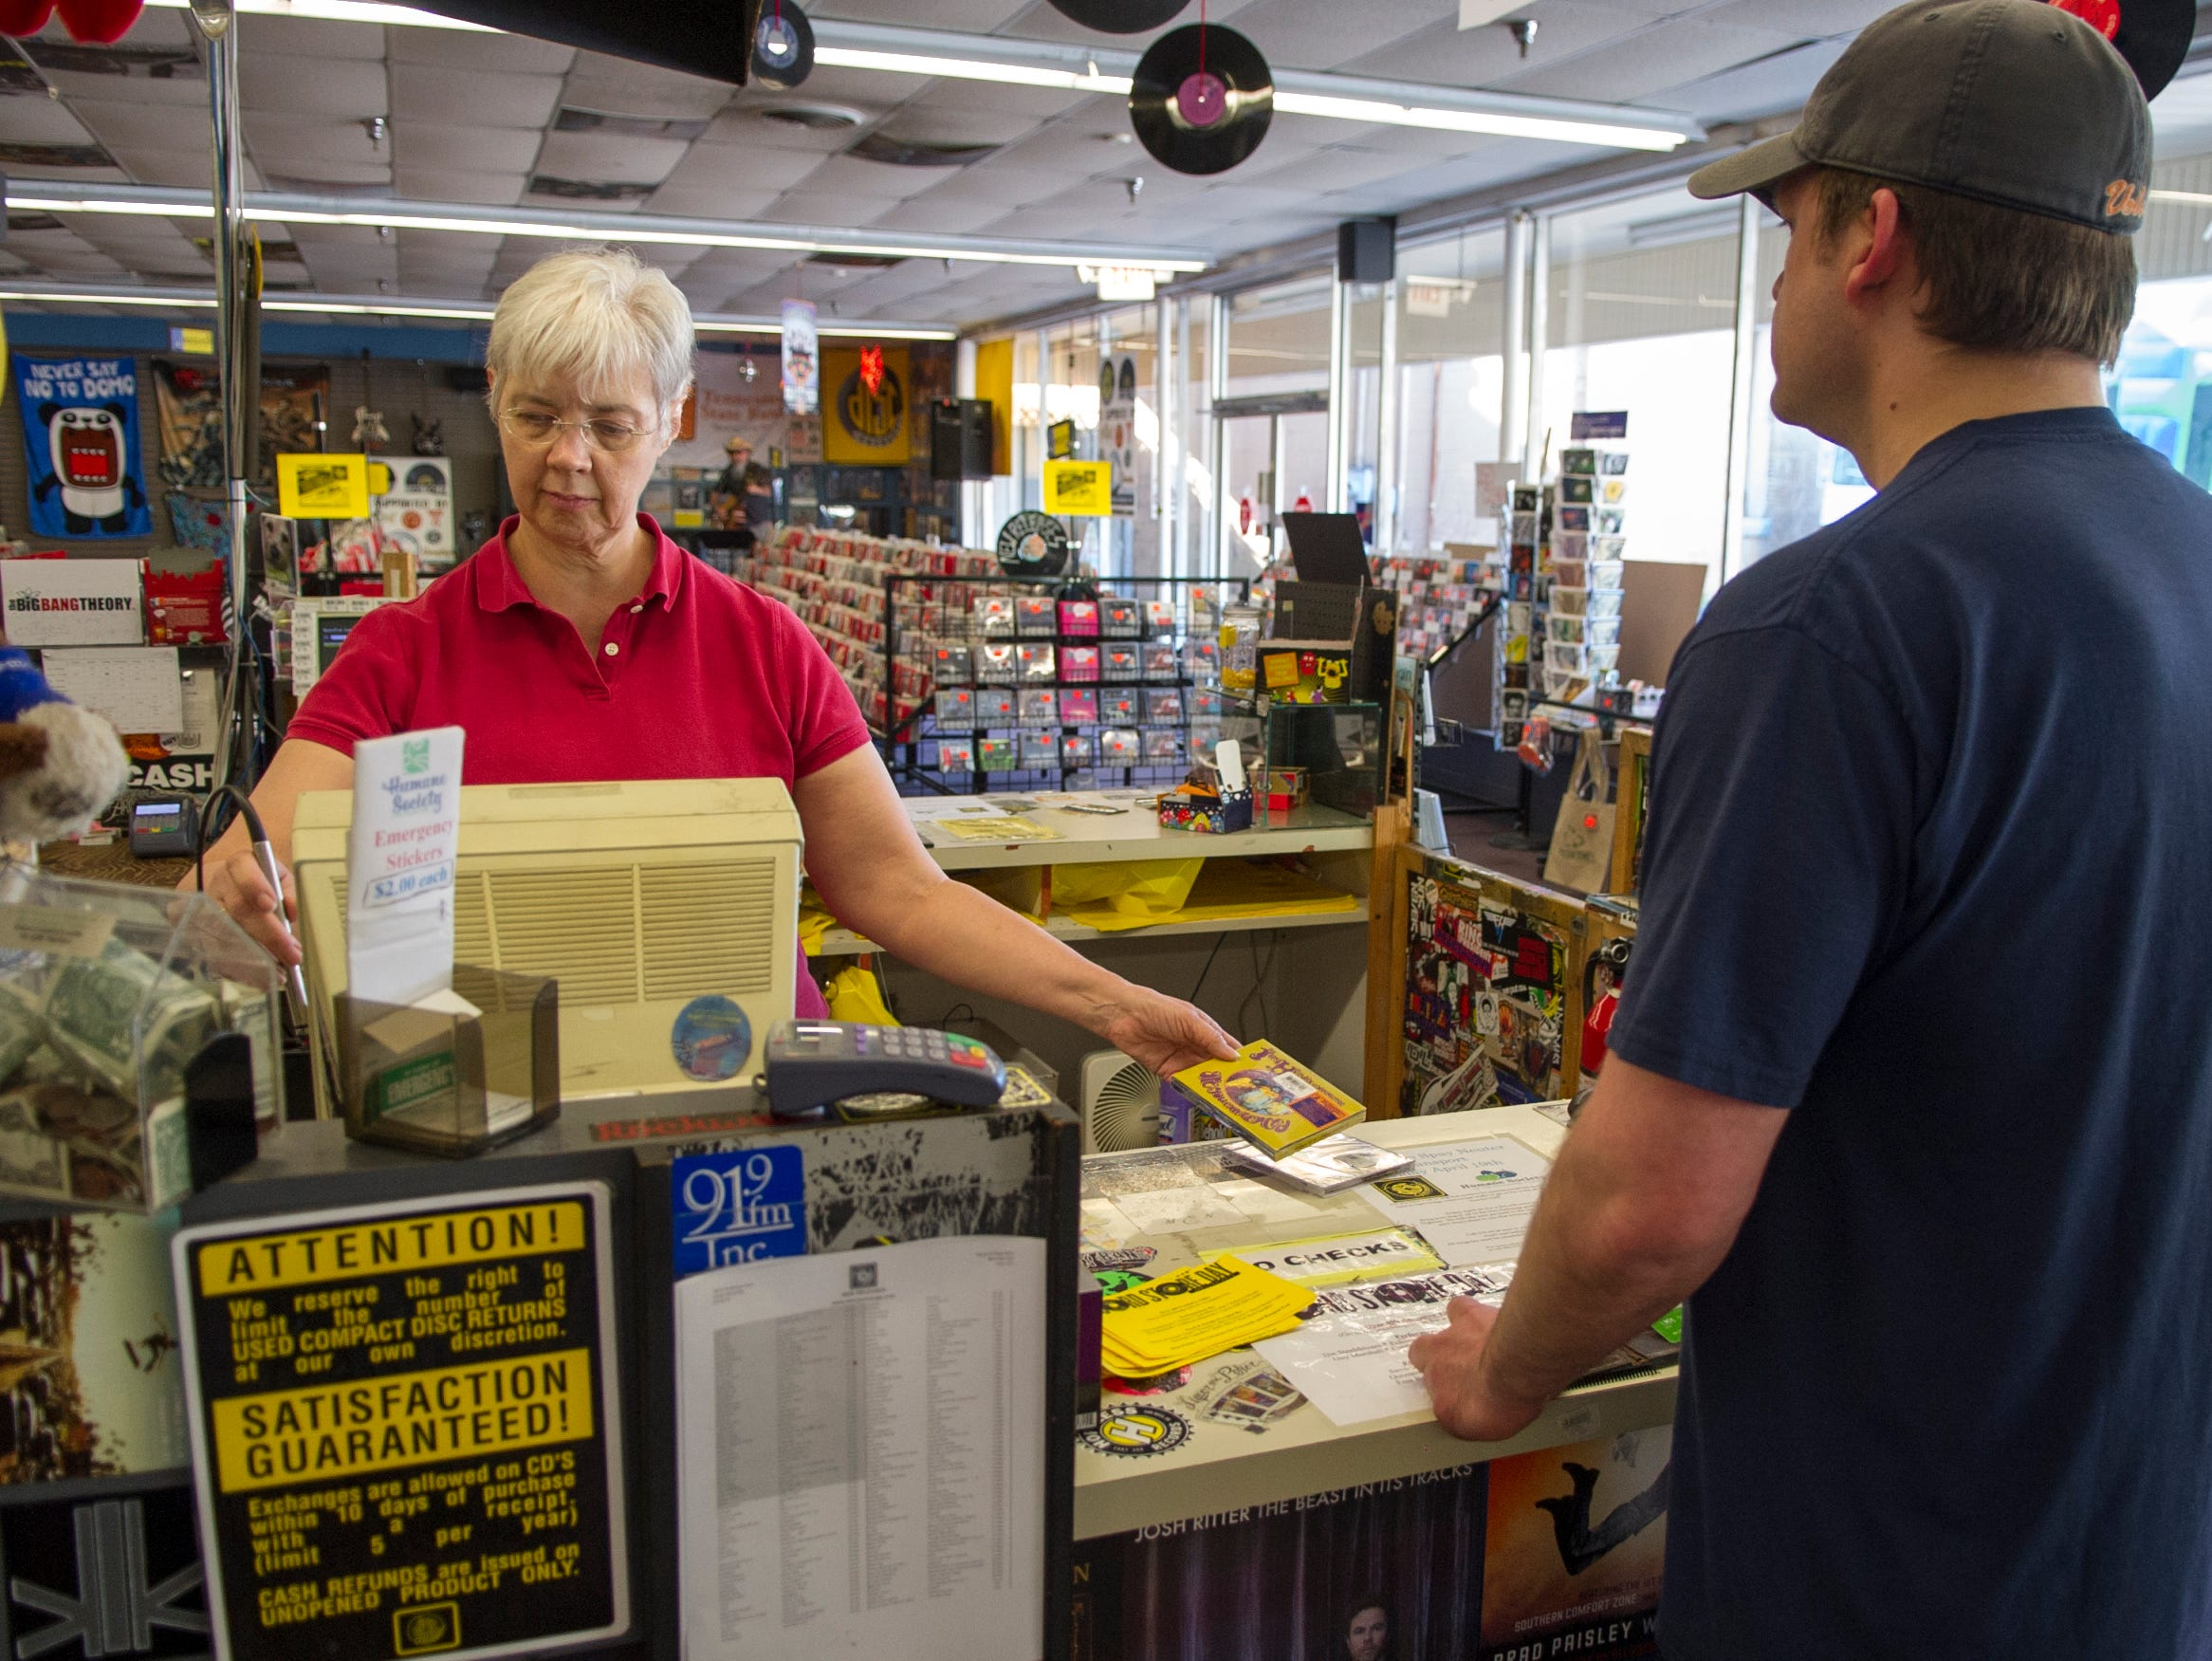 Disc Exchange co-owner Jennie Ingram, left, helps customer Dustin Johnson, right, with a purchase at the store on Chapman Highway in South Knoxville Friday, April 12, 2013. SouthFest takes place this weekend featuring live music at the store and festivities in the nearby parking lot and along Chapman Highway.